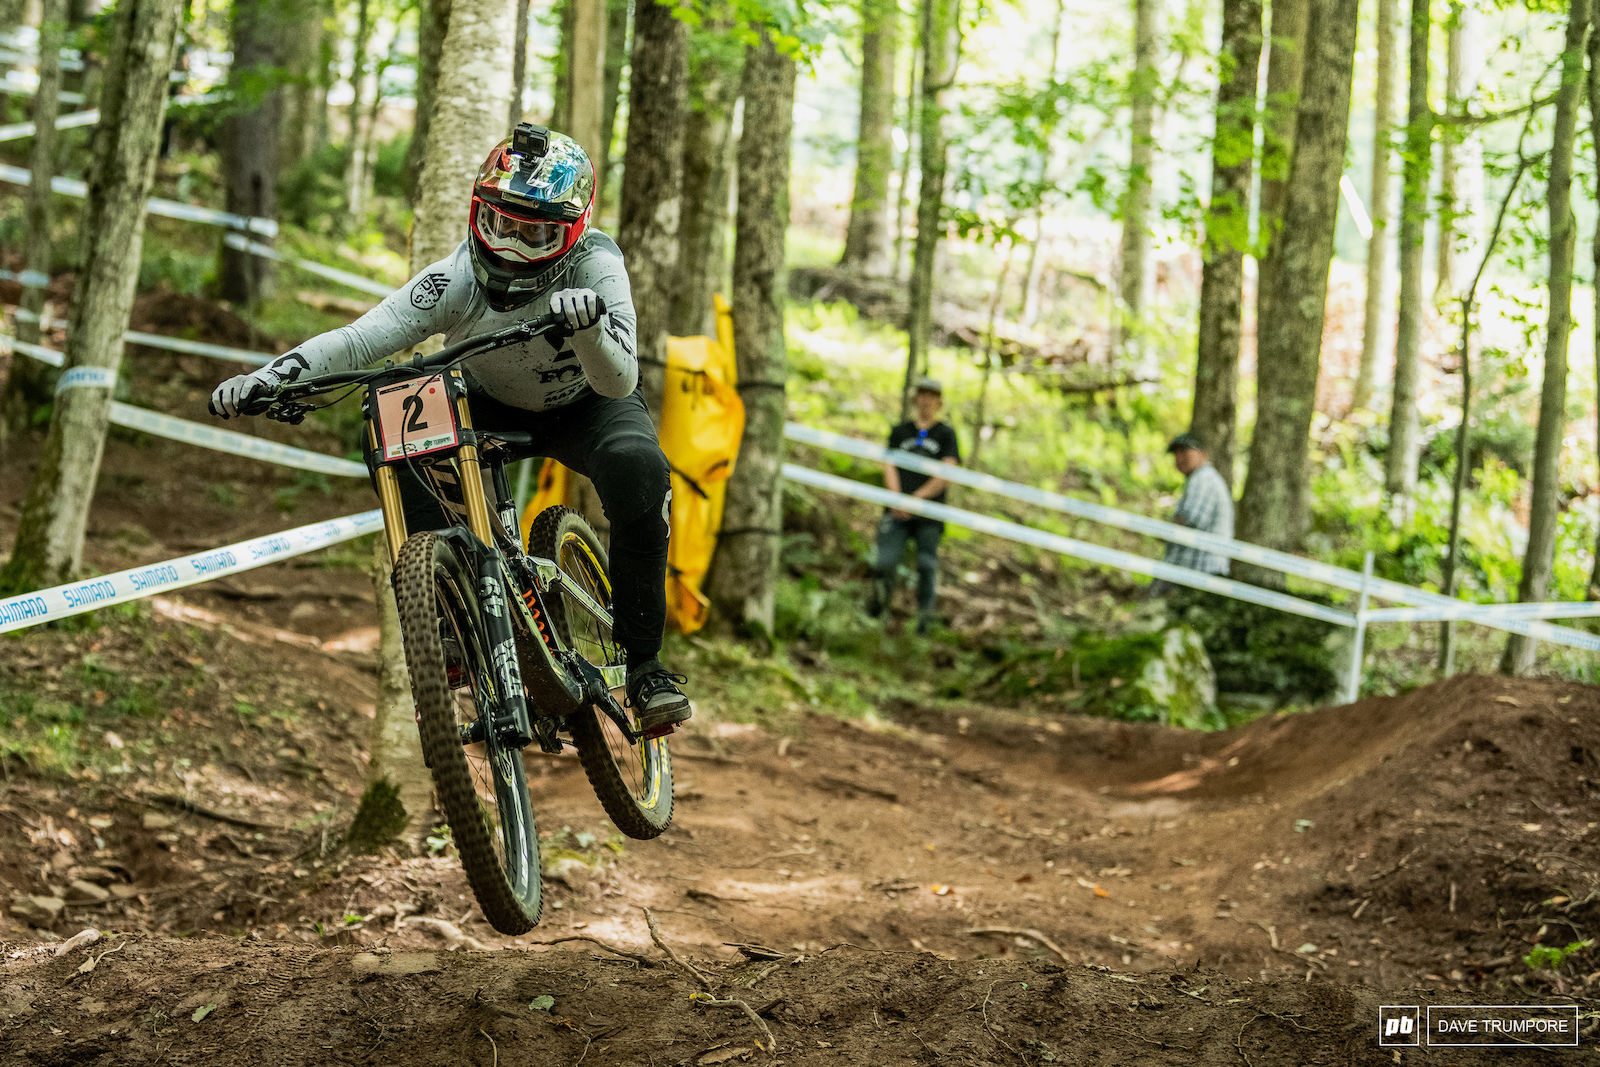 Marine Cabirou ready to battle it out with Tracey Hannah for the overall title